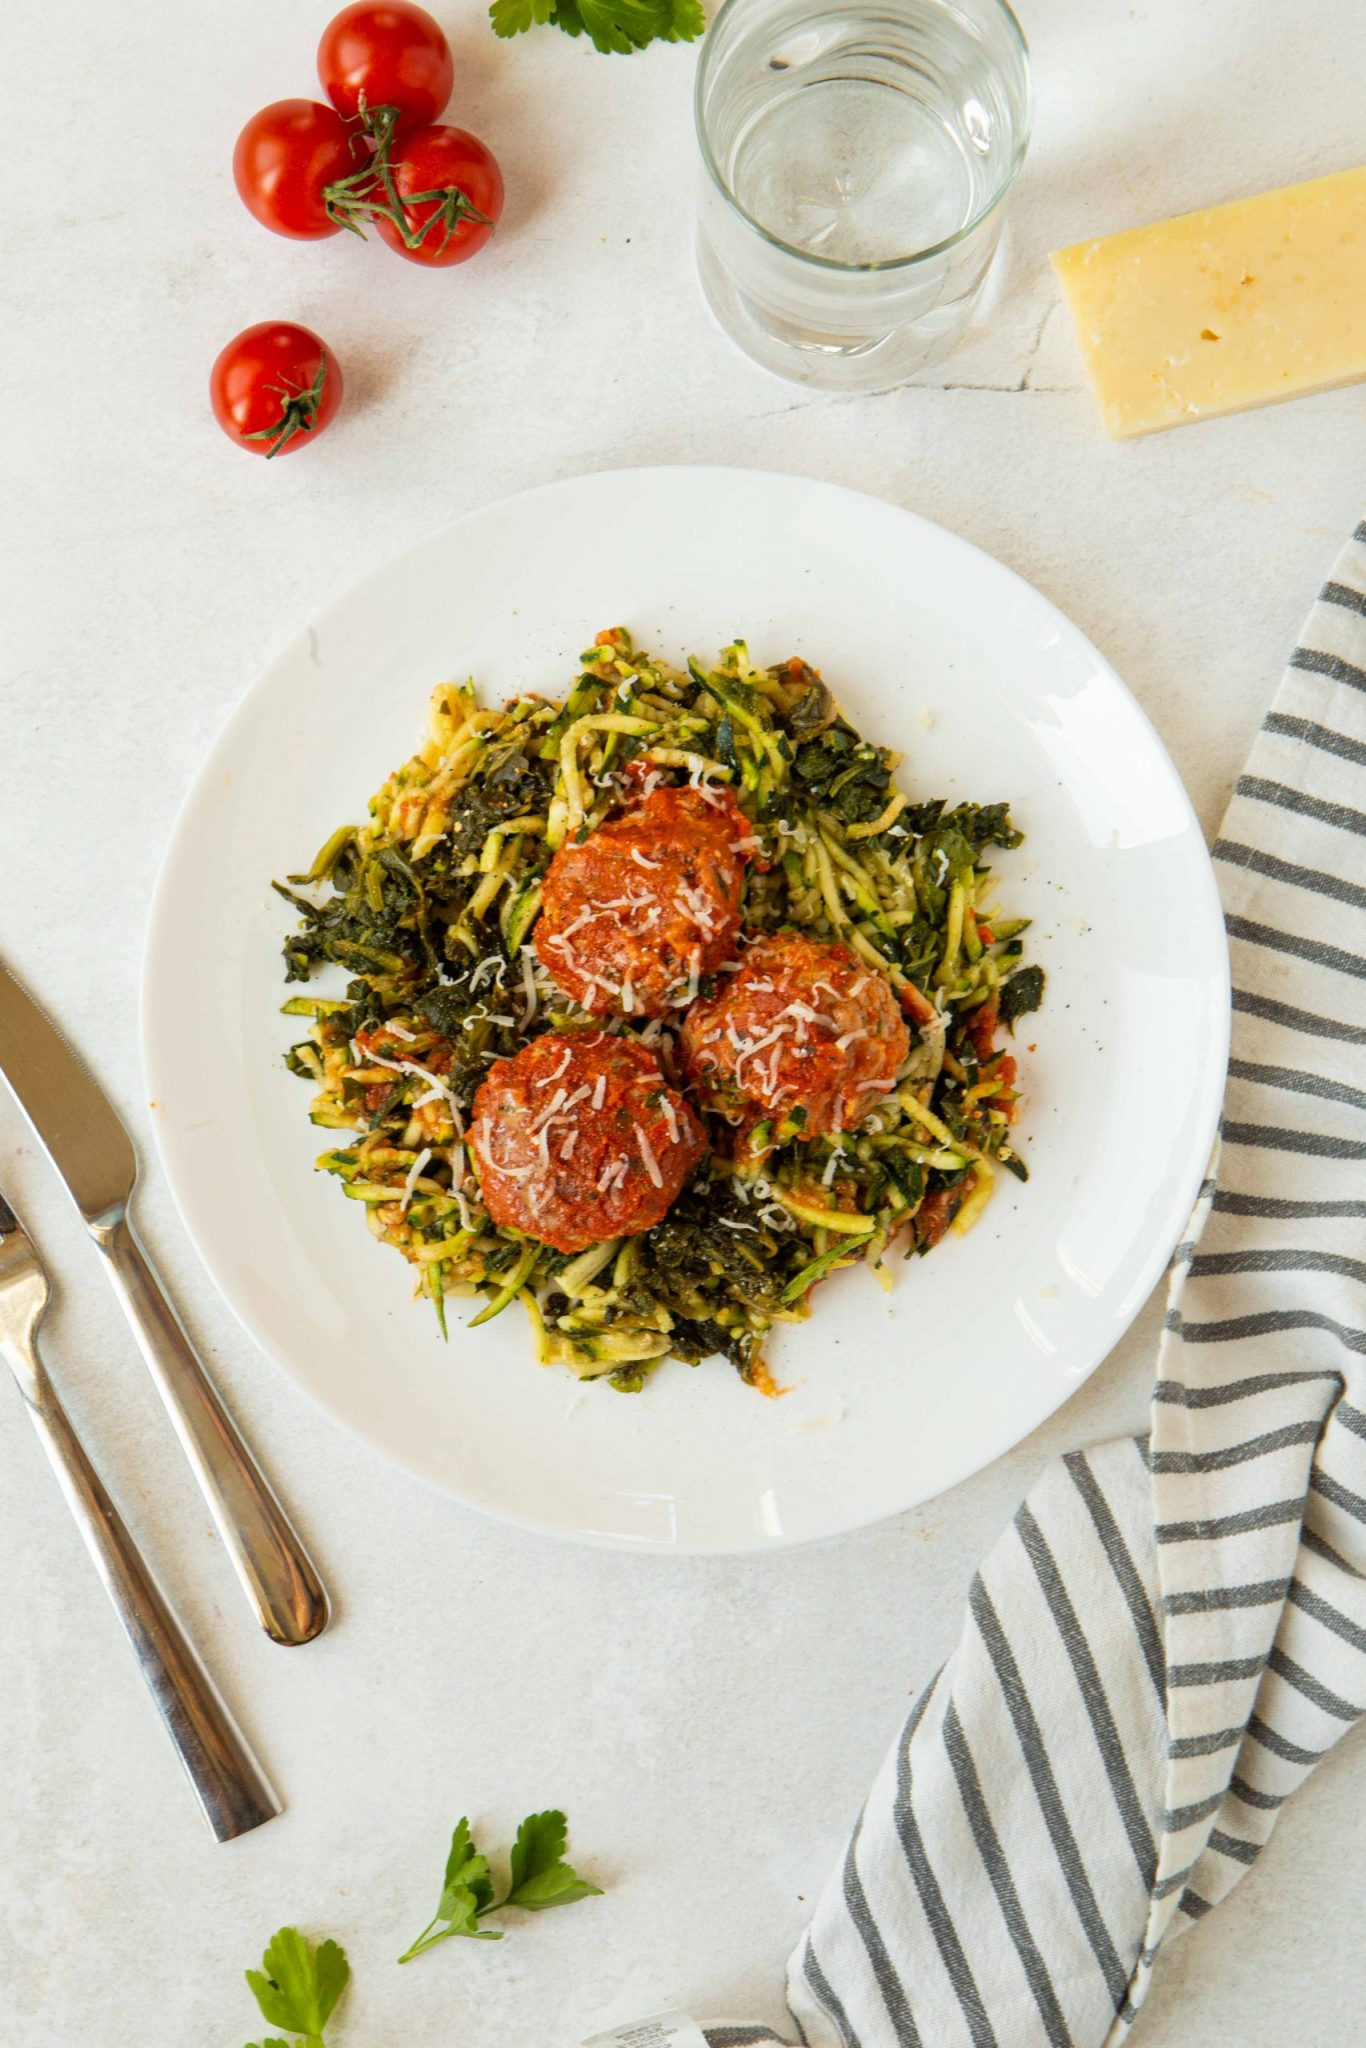 Italian Meatballs with Zoodles